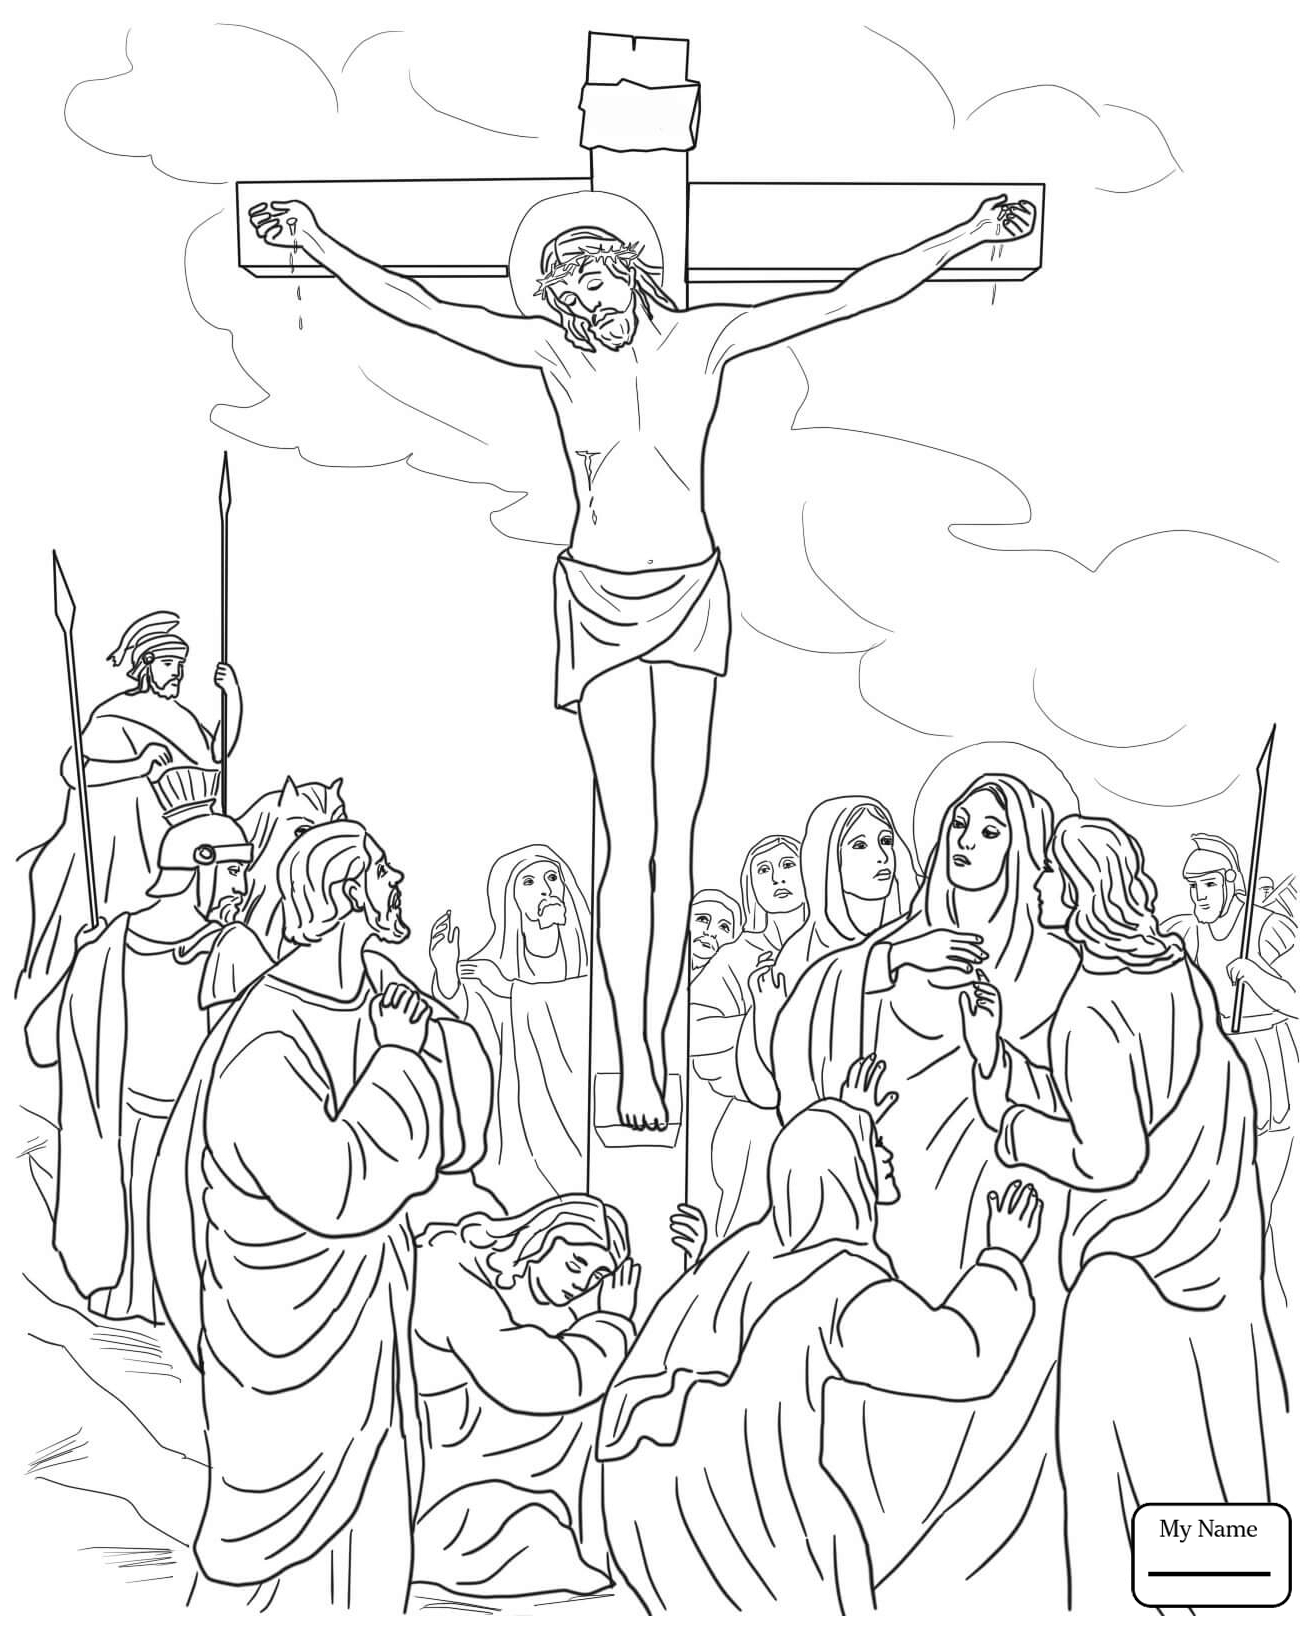 Jesus Christ On The Cross Drawing at GetDrawings.com | Free for ...